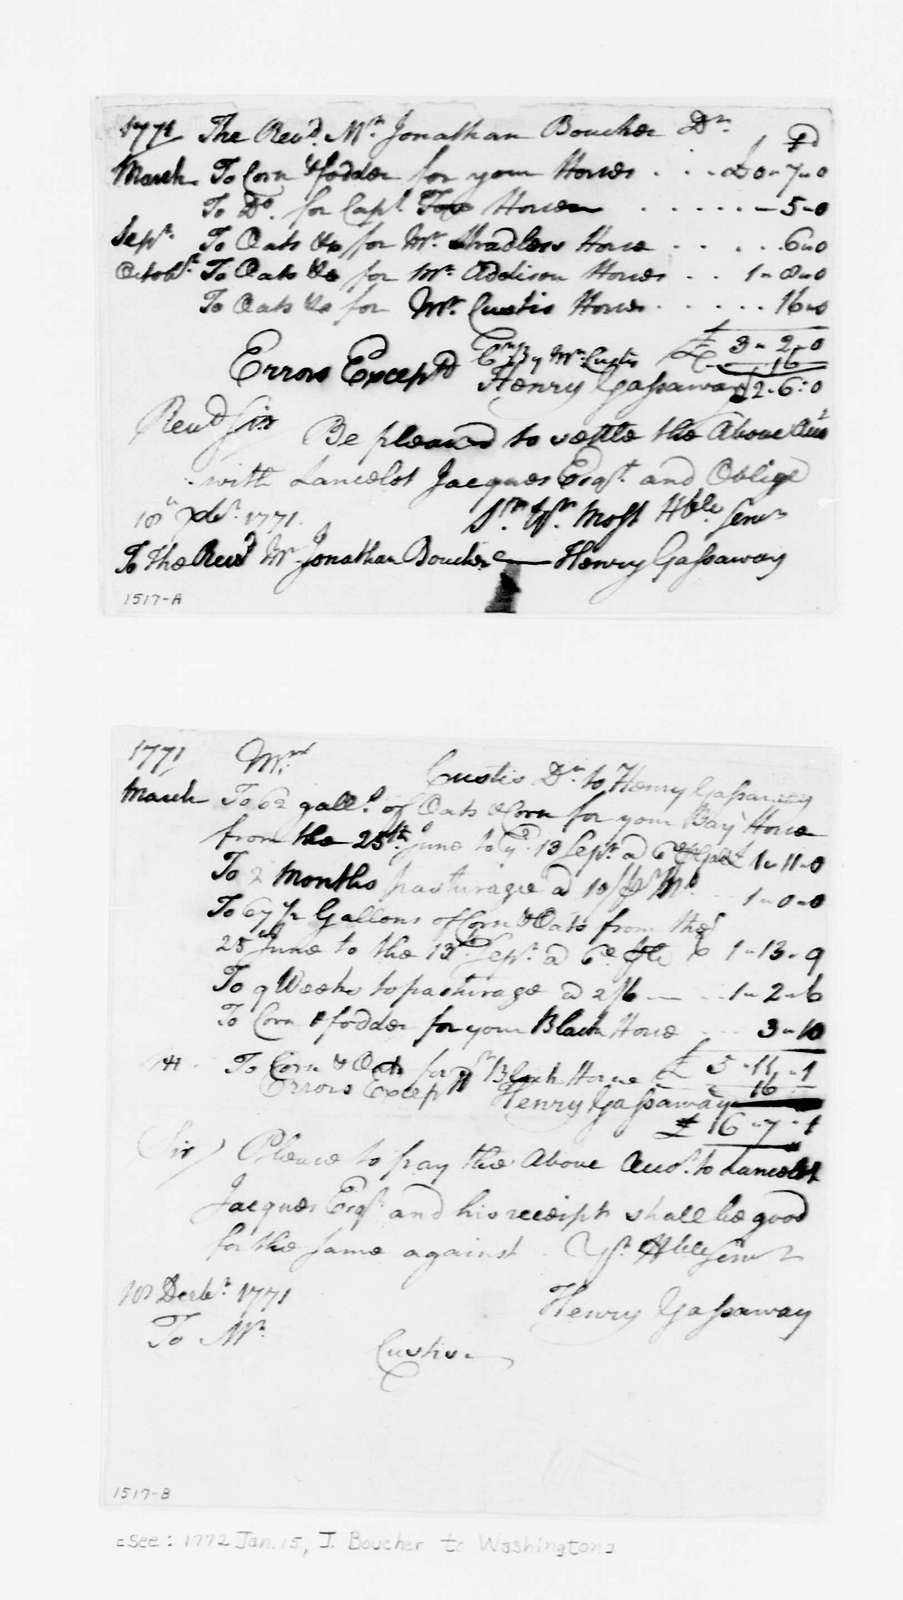 George Washington Papers, Series 4, General Correspondence: Henry Gassaway to Jonathan Boucher and John Parke Custis, December 18, 1771, Bills from March 1771